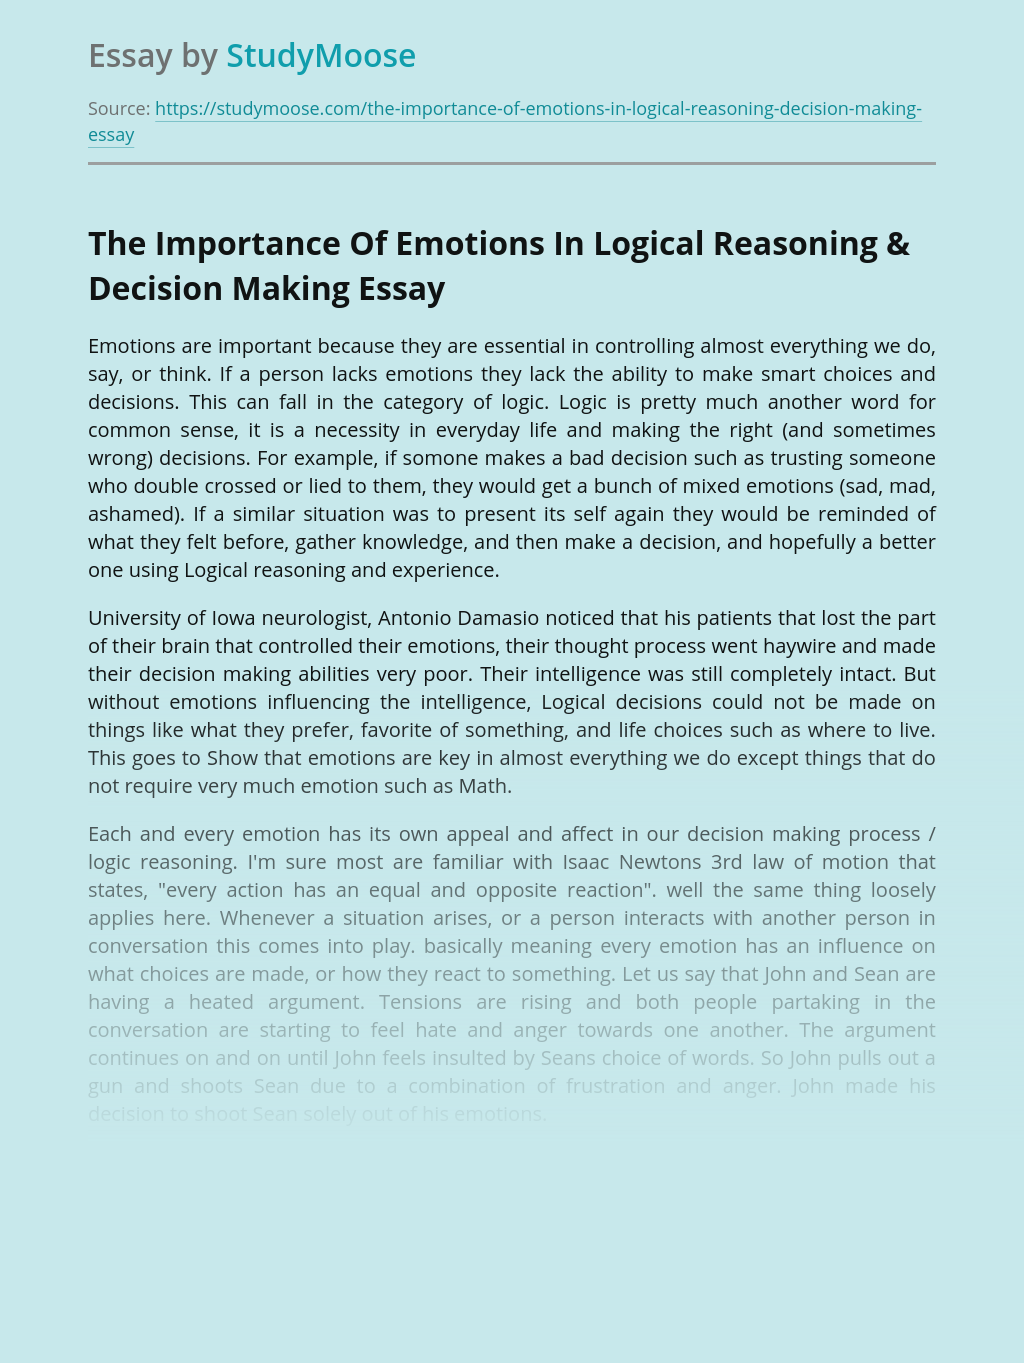 The Importance Of Emotions In Logical Reasoning & Decision Making